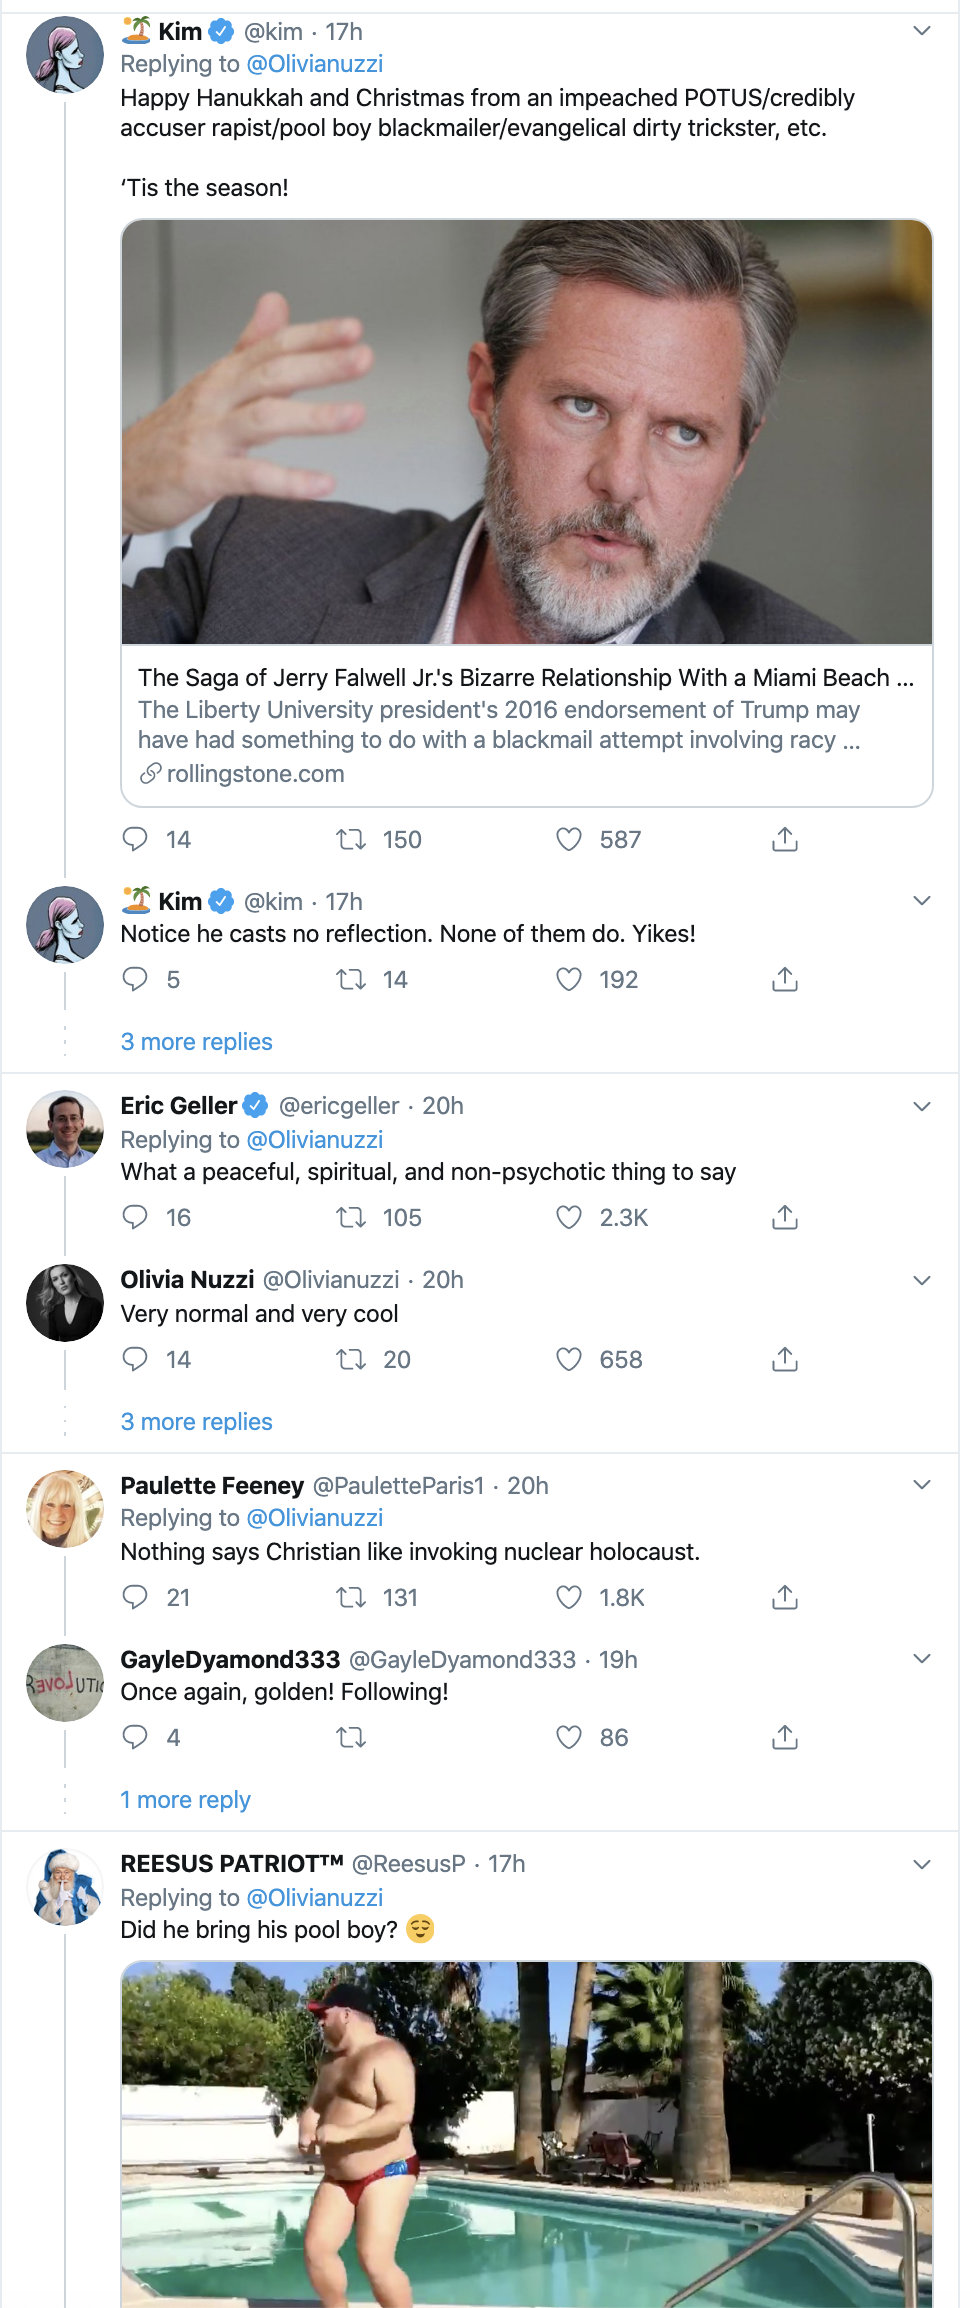 Screen-Shot-2019-12-23-at-11.56.55-AM Delusional Jerry Falwell Jr. Threatens Dems With Nuclear War Corruption Featured Politics Religion Top Stories